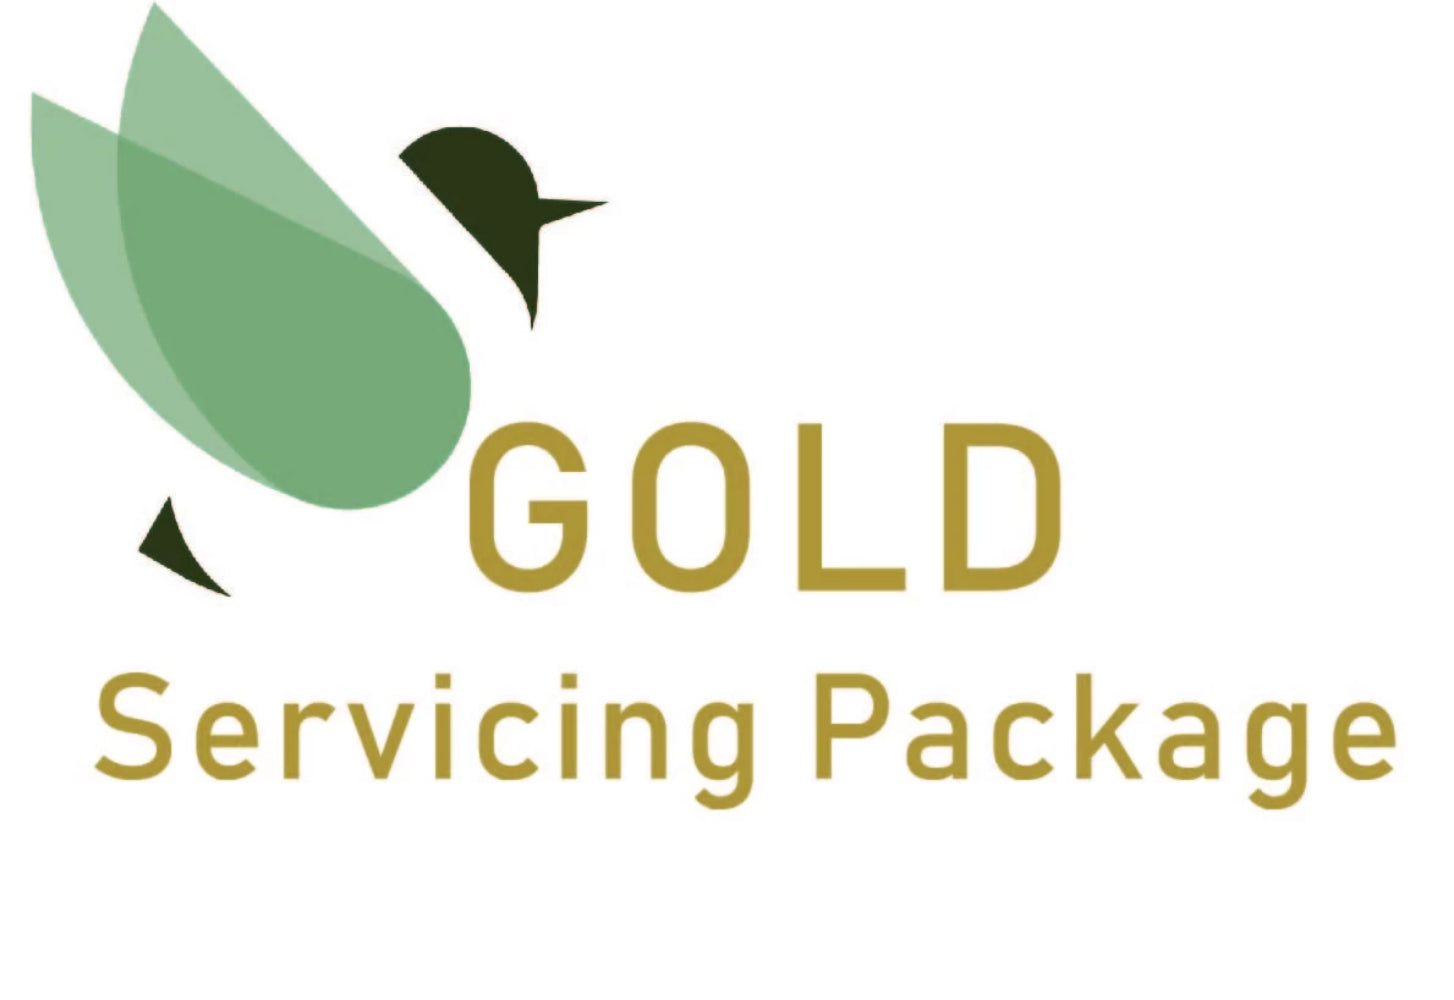 Freed Gold Servicing Package - Electric Scooter